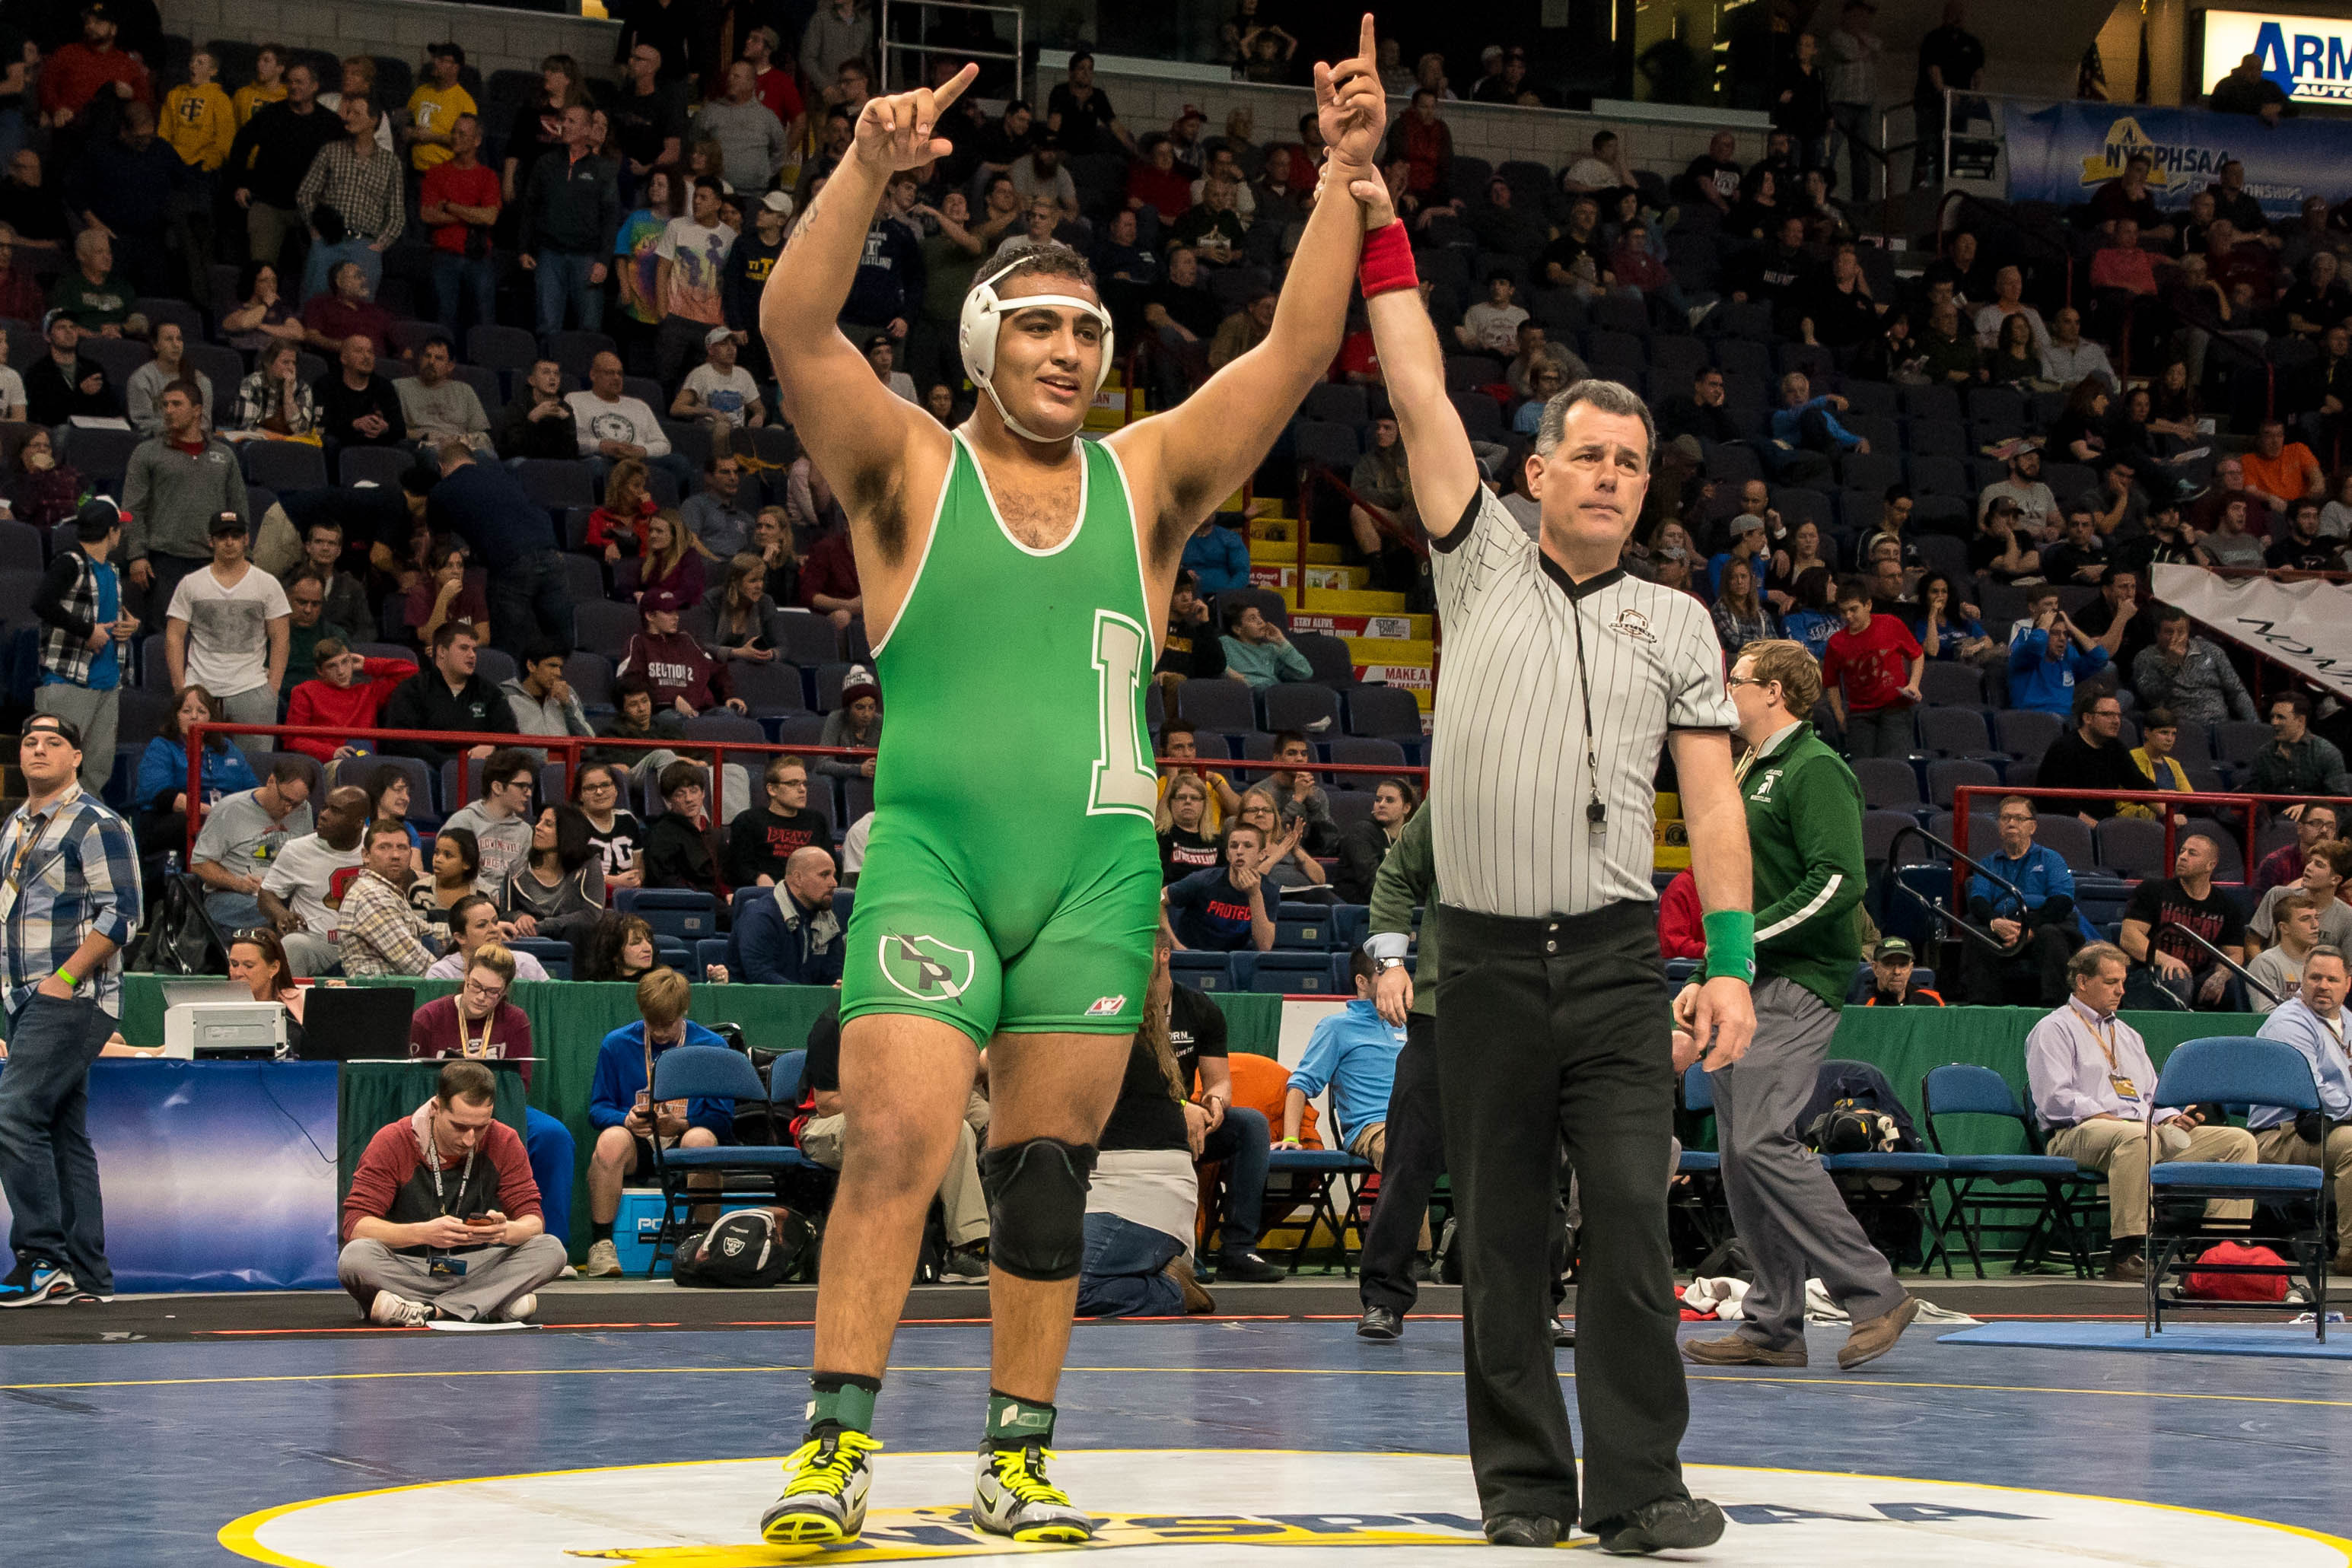 Laith Alsous from Lewiston-Porter won in the Division II 285-pound class at the New York State Wrestling Championships. (Photo courtesy of Bob Koshinski)